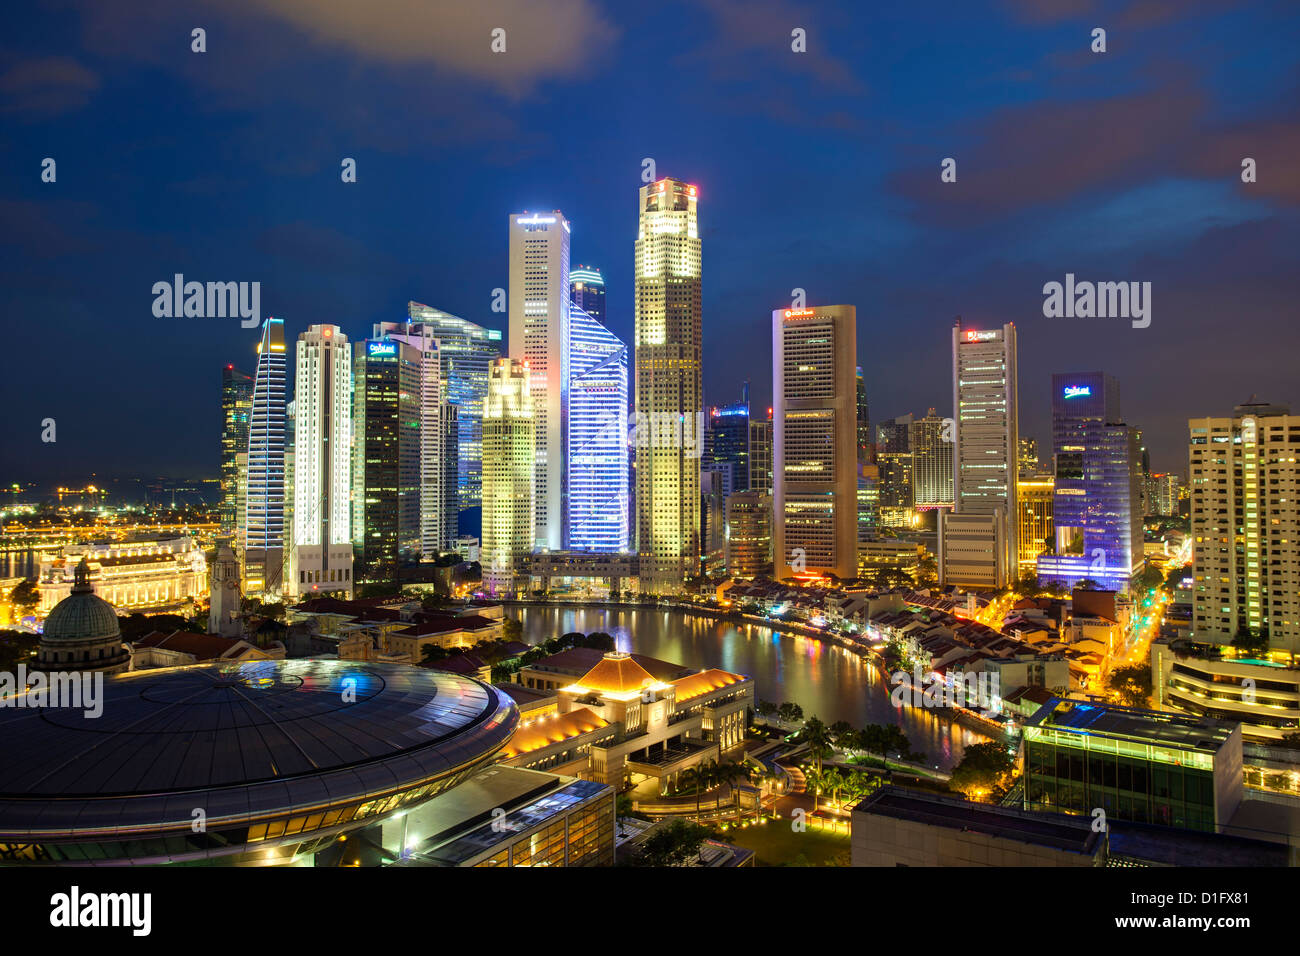 Skyline und Financial District in der Abenddämmerung, Singapur, Südostasien, Asien Stockbild